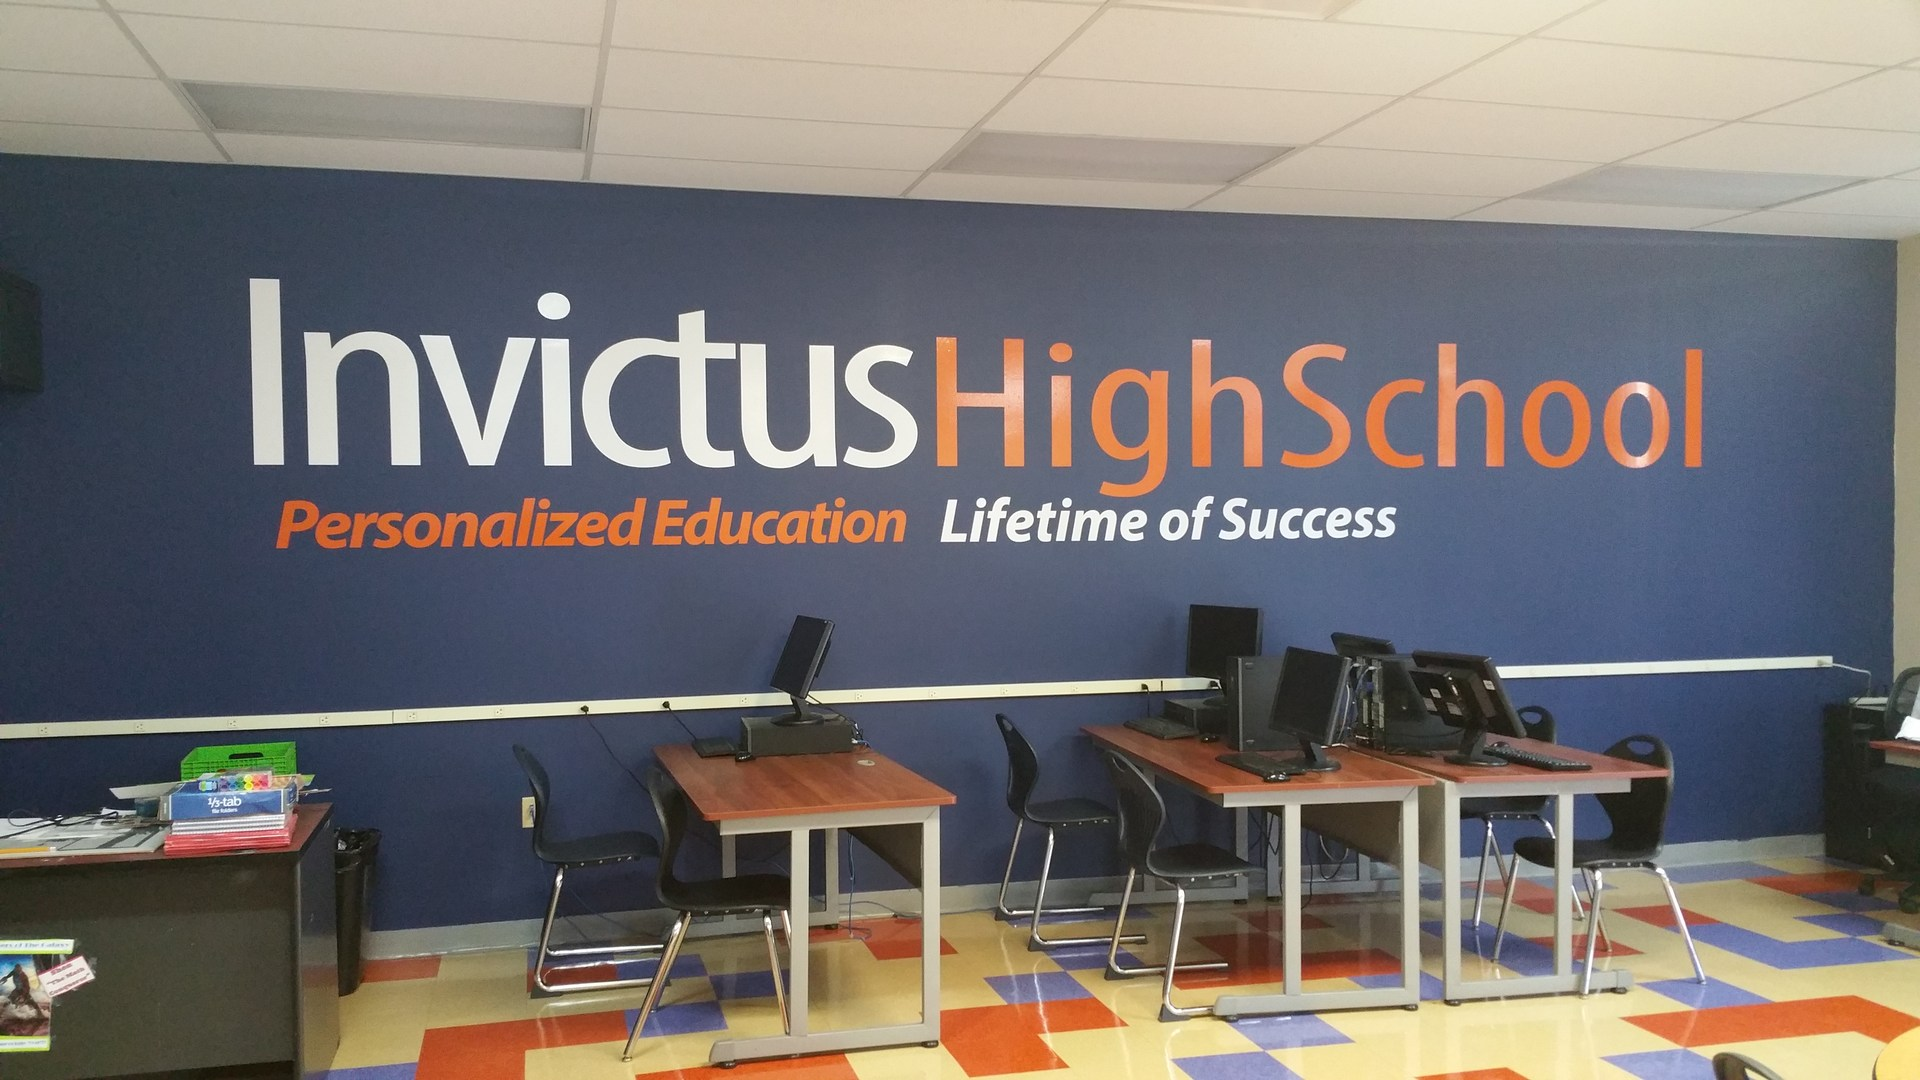 New look at Invictus High School Cleveland